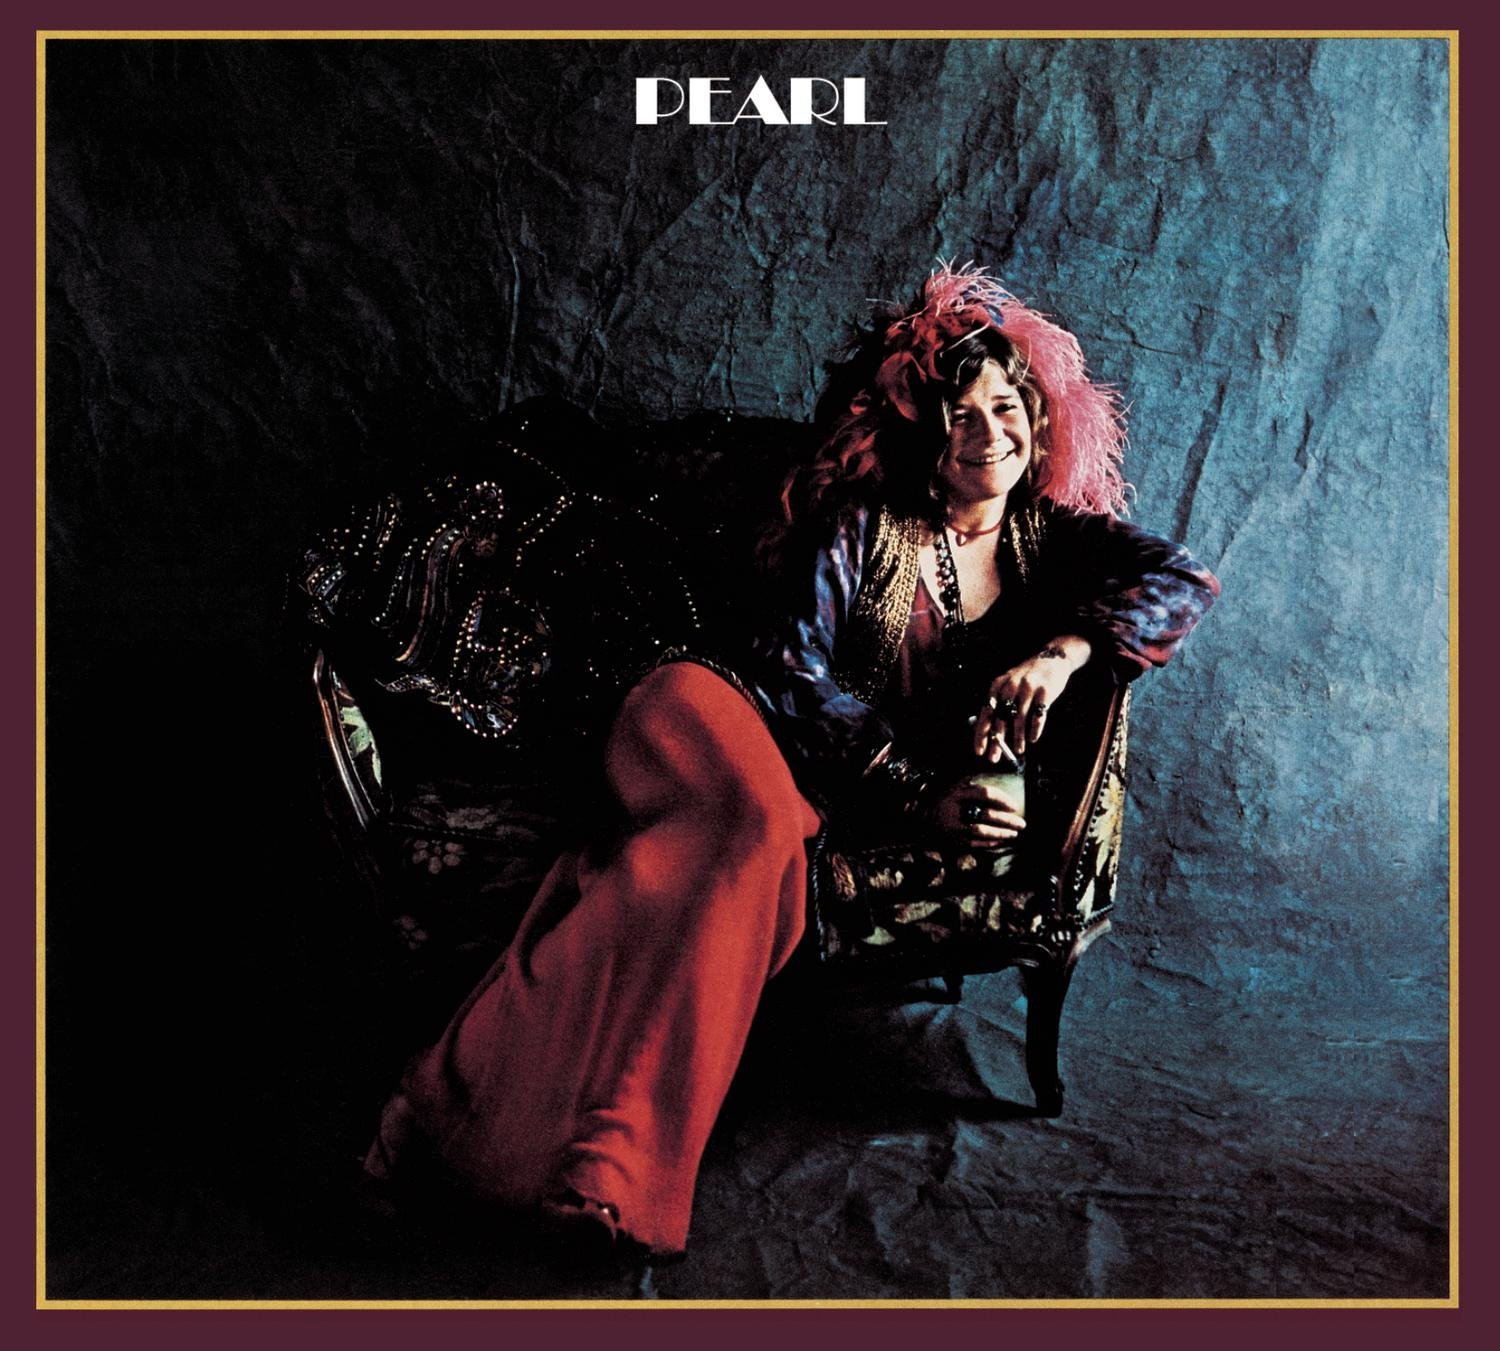 'Pearl' is the second and final solo studio album by Janis Joplin, released posthumously by Columbia Records on January 11, 1971. It was the final album with her direct participation, and the only Joplin album recorded with the Full Tilt Boogie Band, her final touring unit. It peaked at number one on the Billboard 200, holding that spot for nine weeks. It has been certified quadruple platinum by the RIAA.